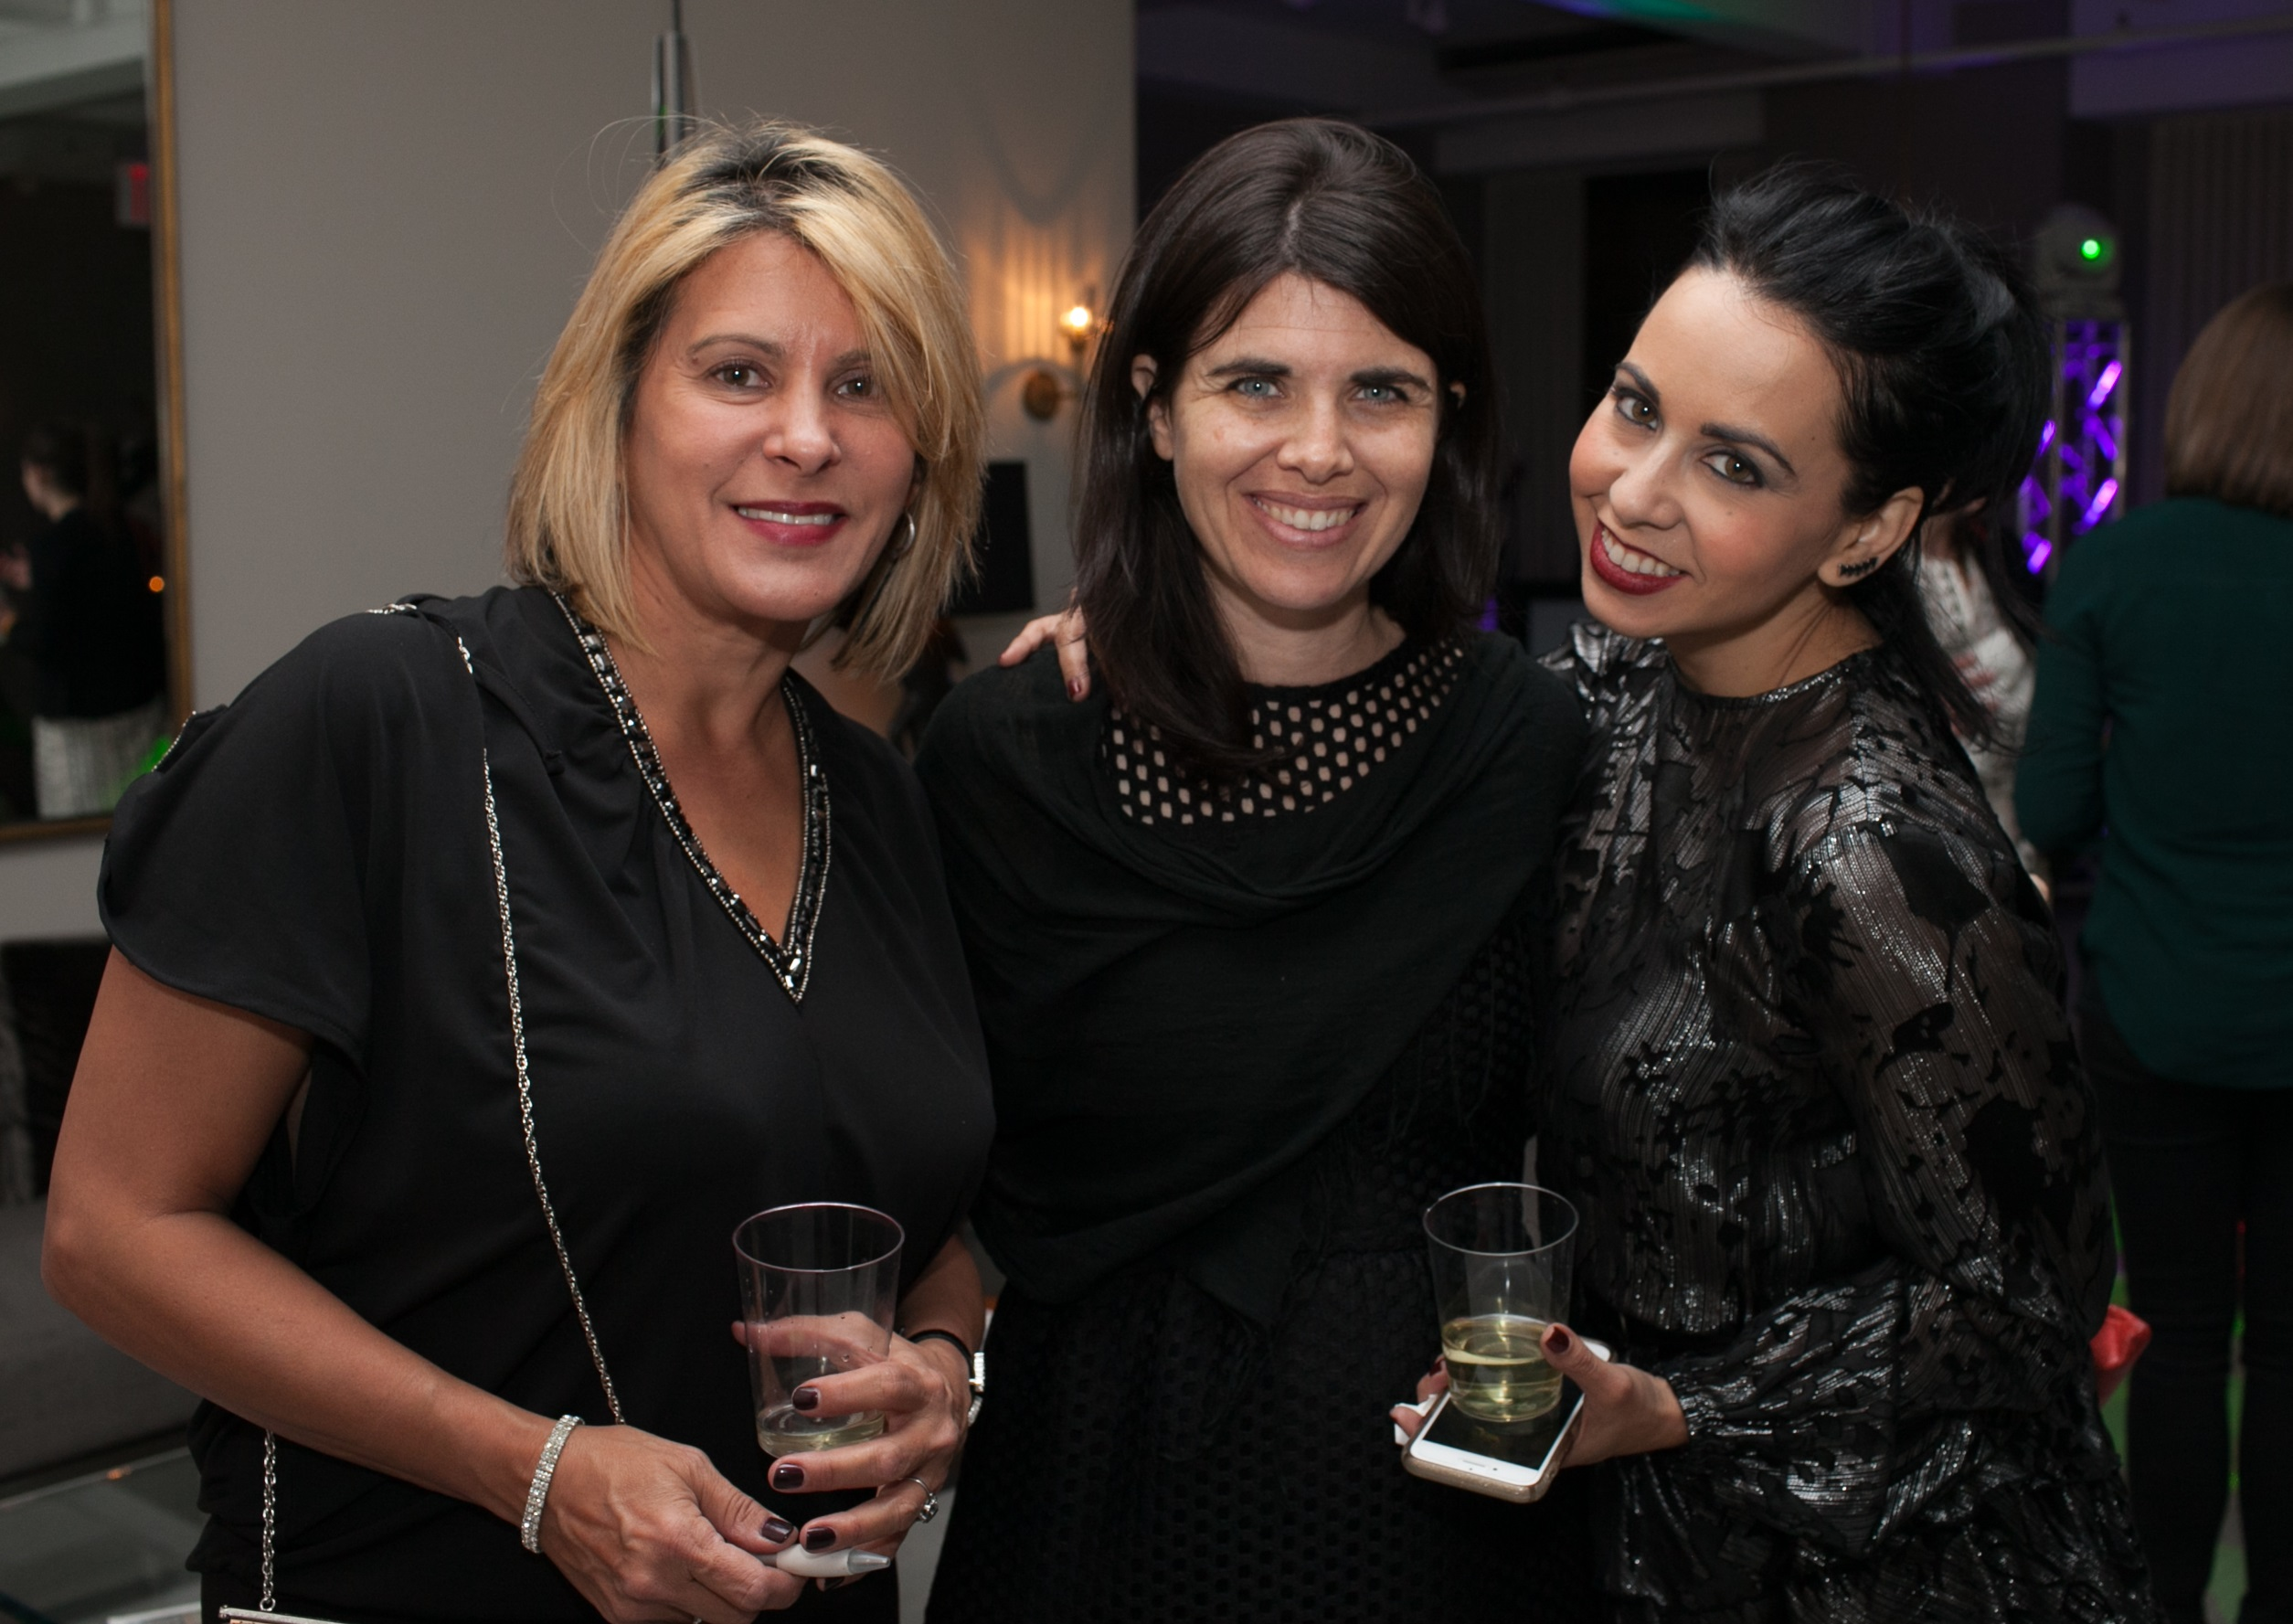 Barbara Ortega; Danielle McWilliams, ASID NY Metro director of communications; and Vanessa Deleon, director at large